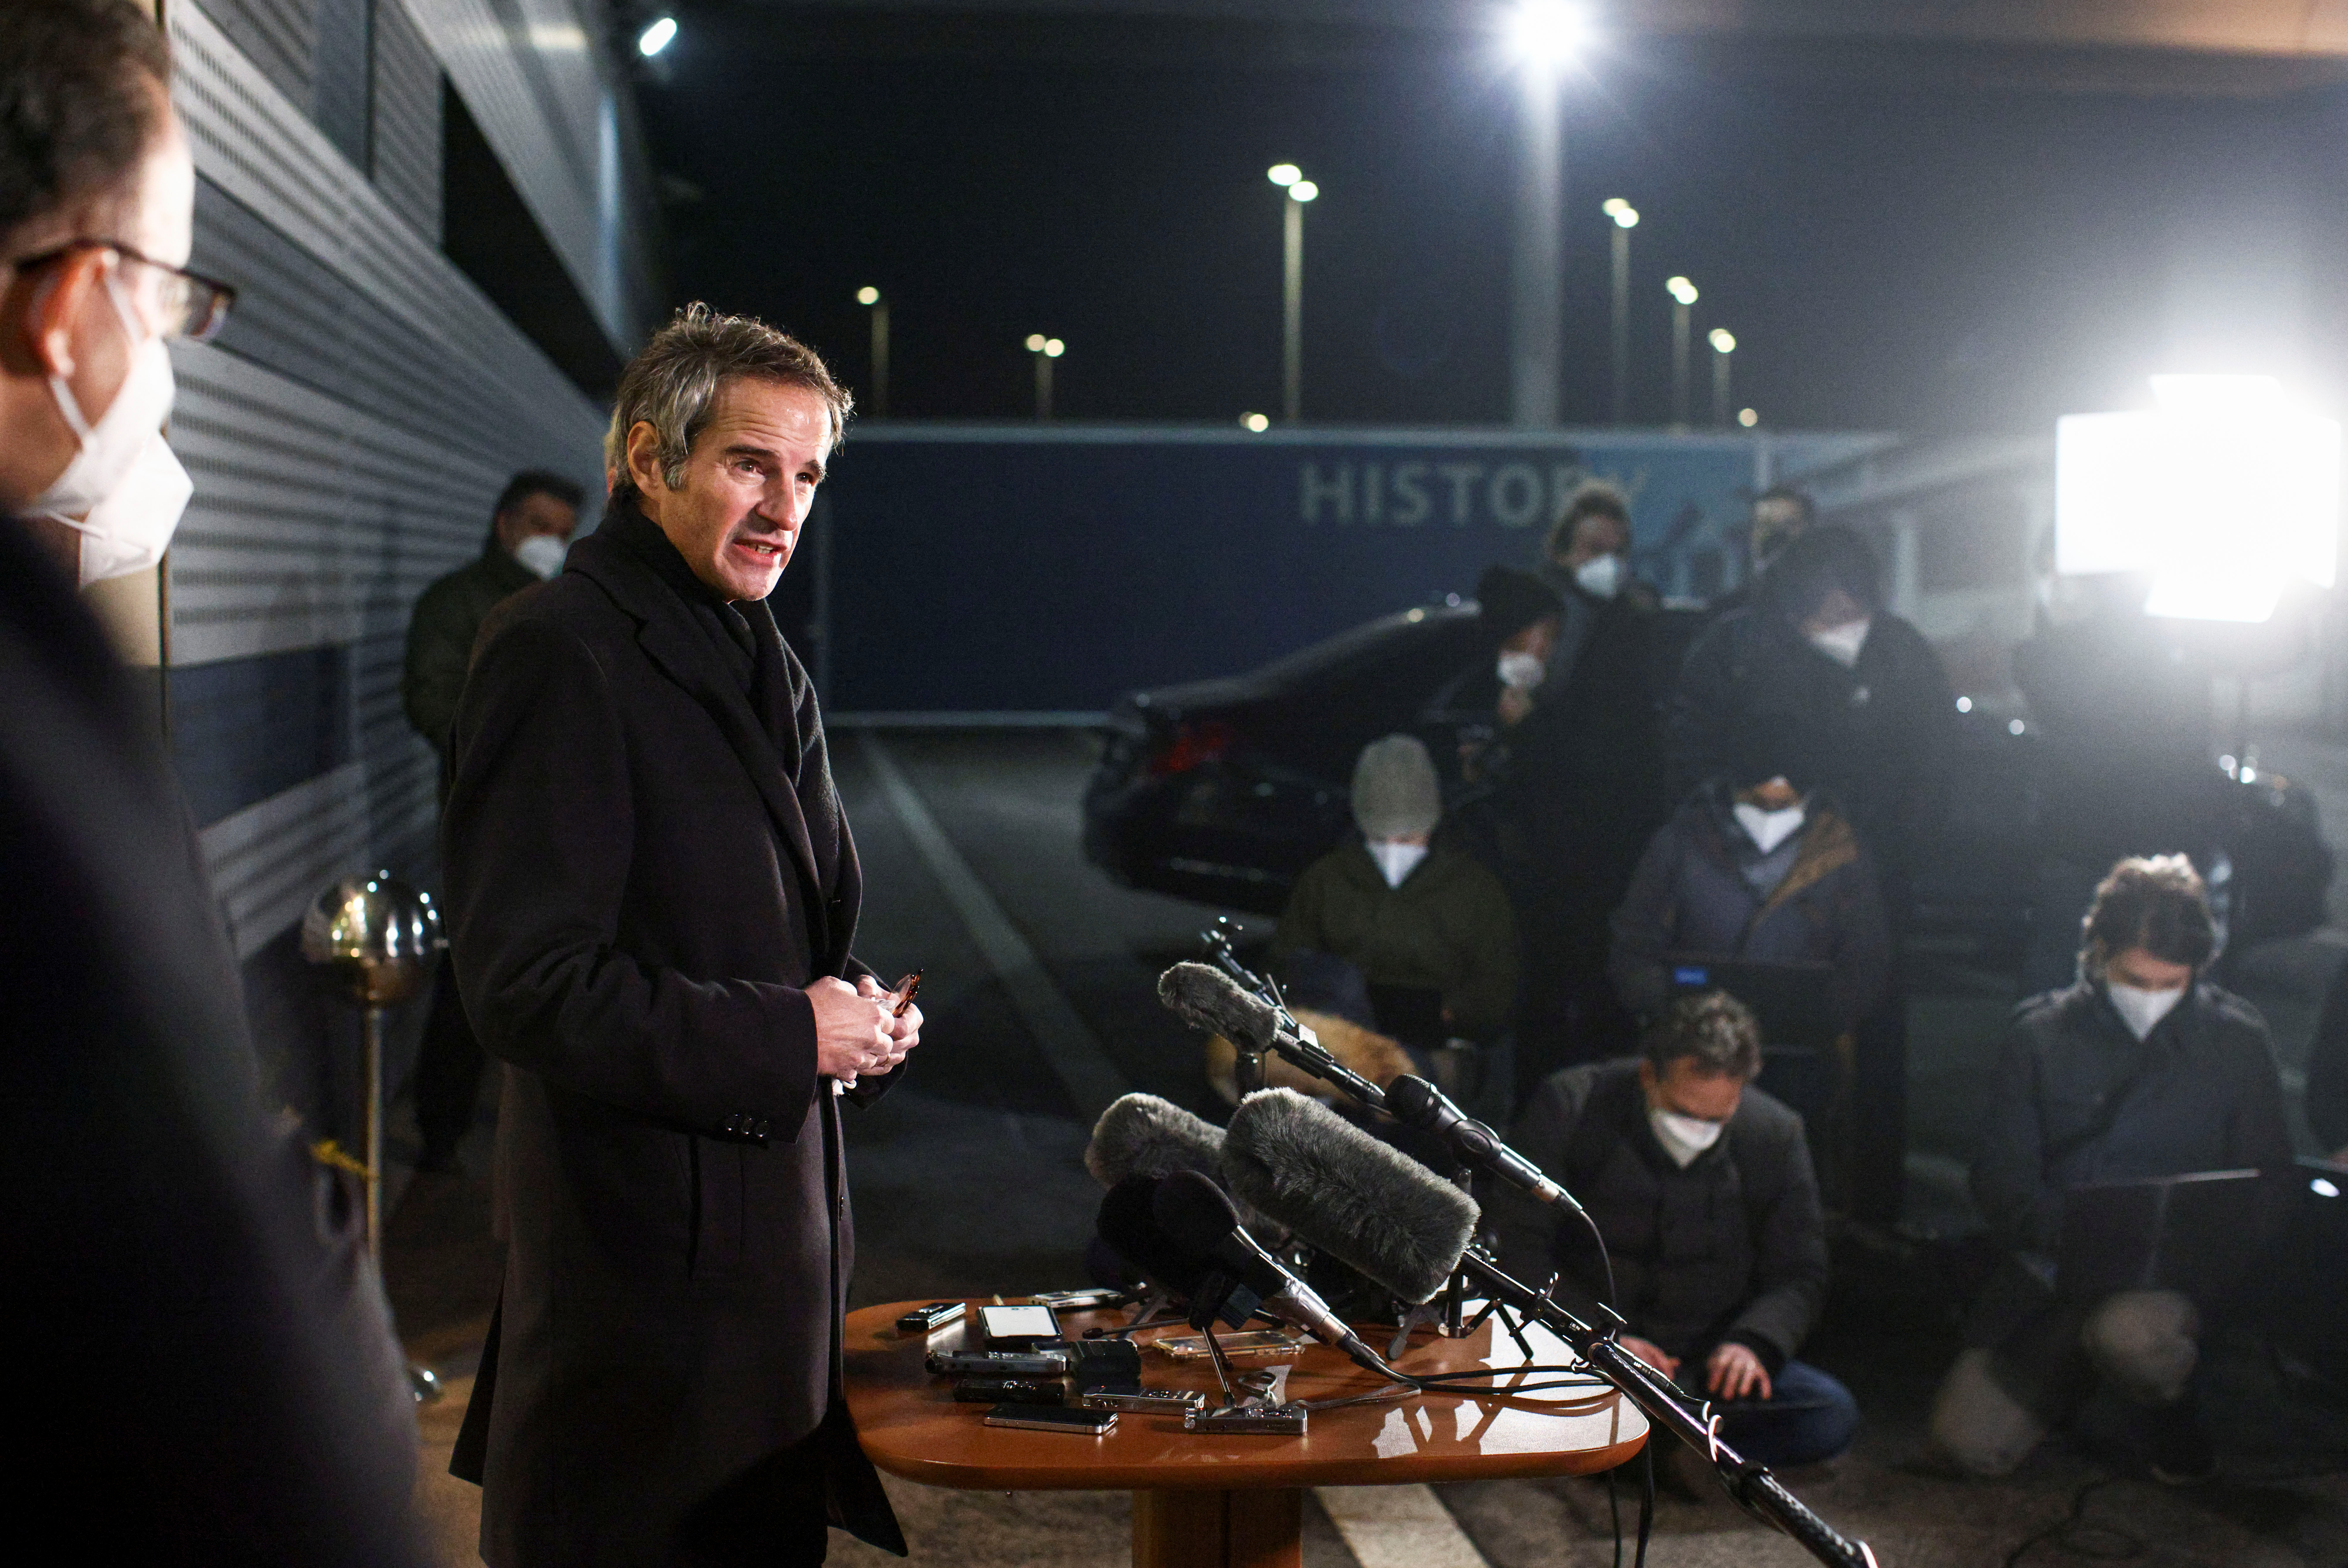 International Atomic Energy Agency (IAEA) Director General Rafael Grossi addresses the media upon his arrival from Tehran, at Vienna International Airport in Schwechat, Austria February 21, 2021. REUTERS/Lisi Niesner